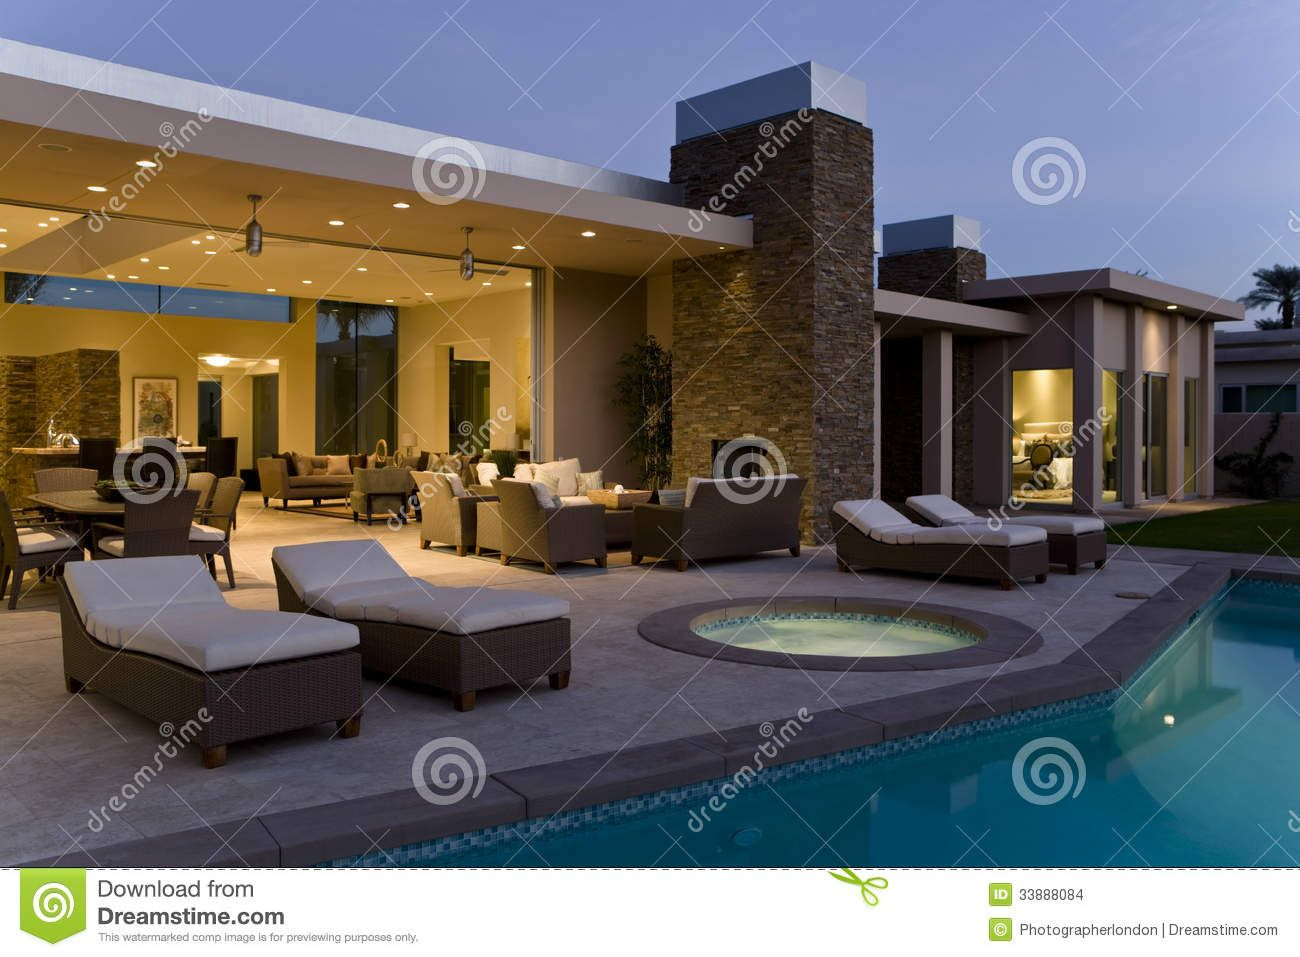 House With Sunloungers On Patio By Pool At Dusk From Over 50 Million High